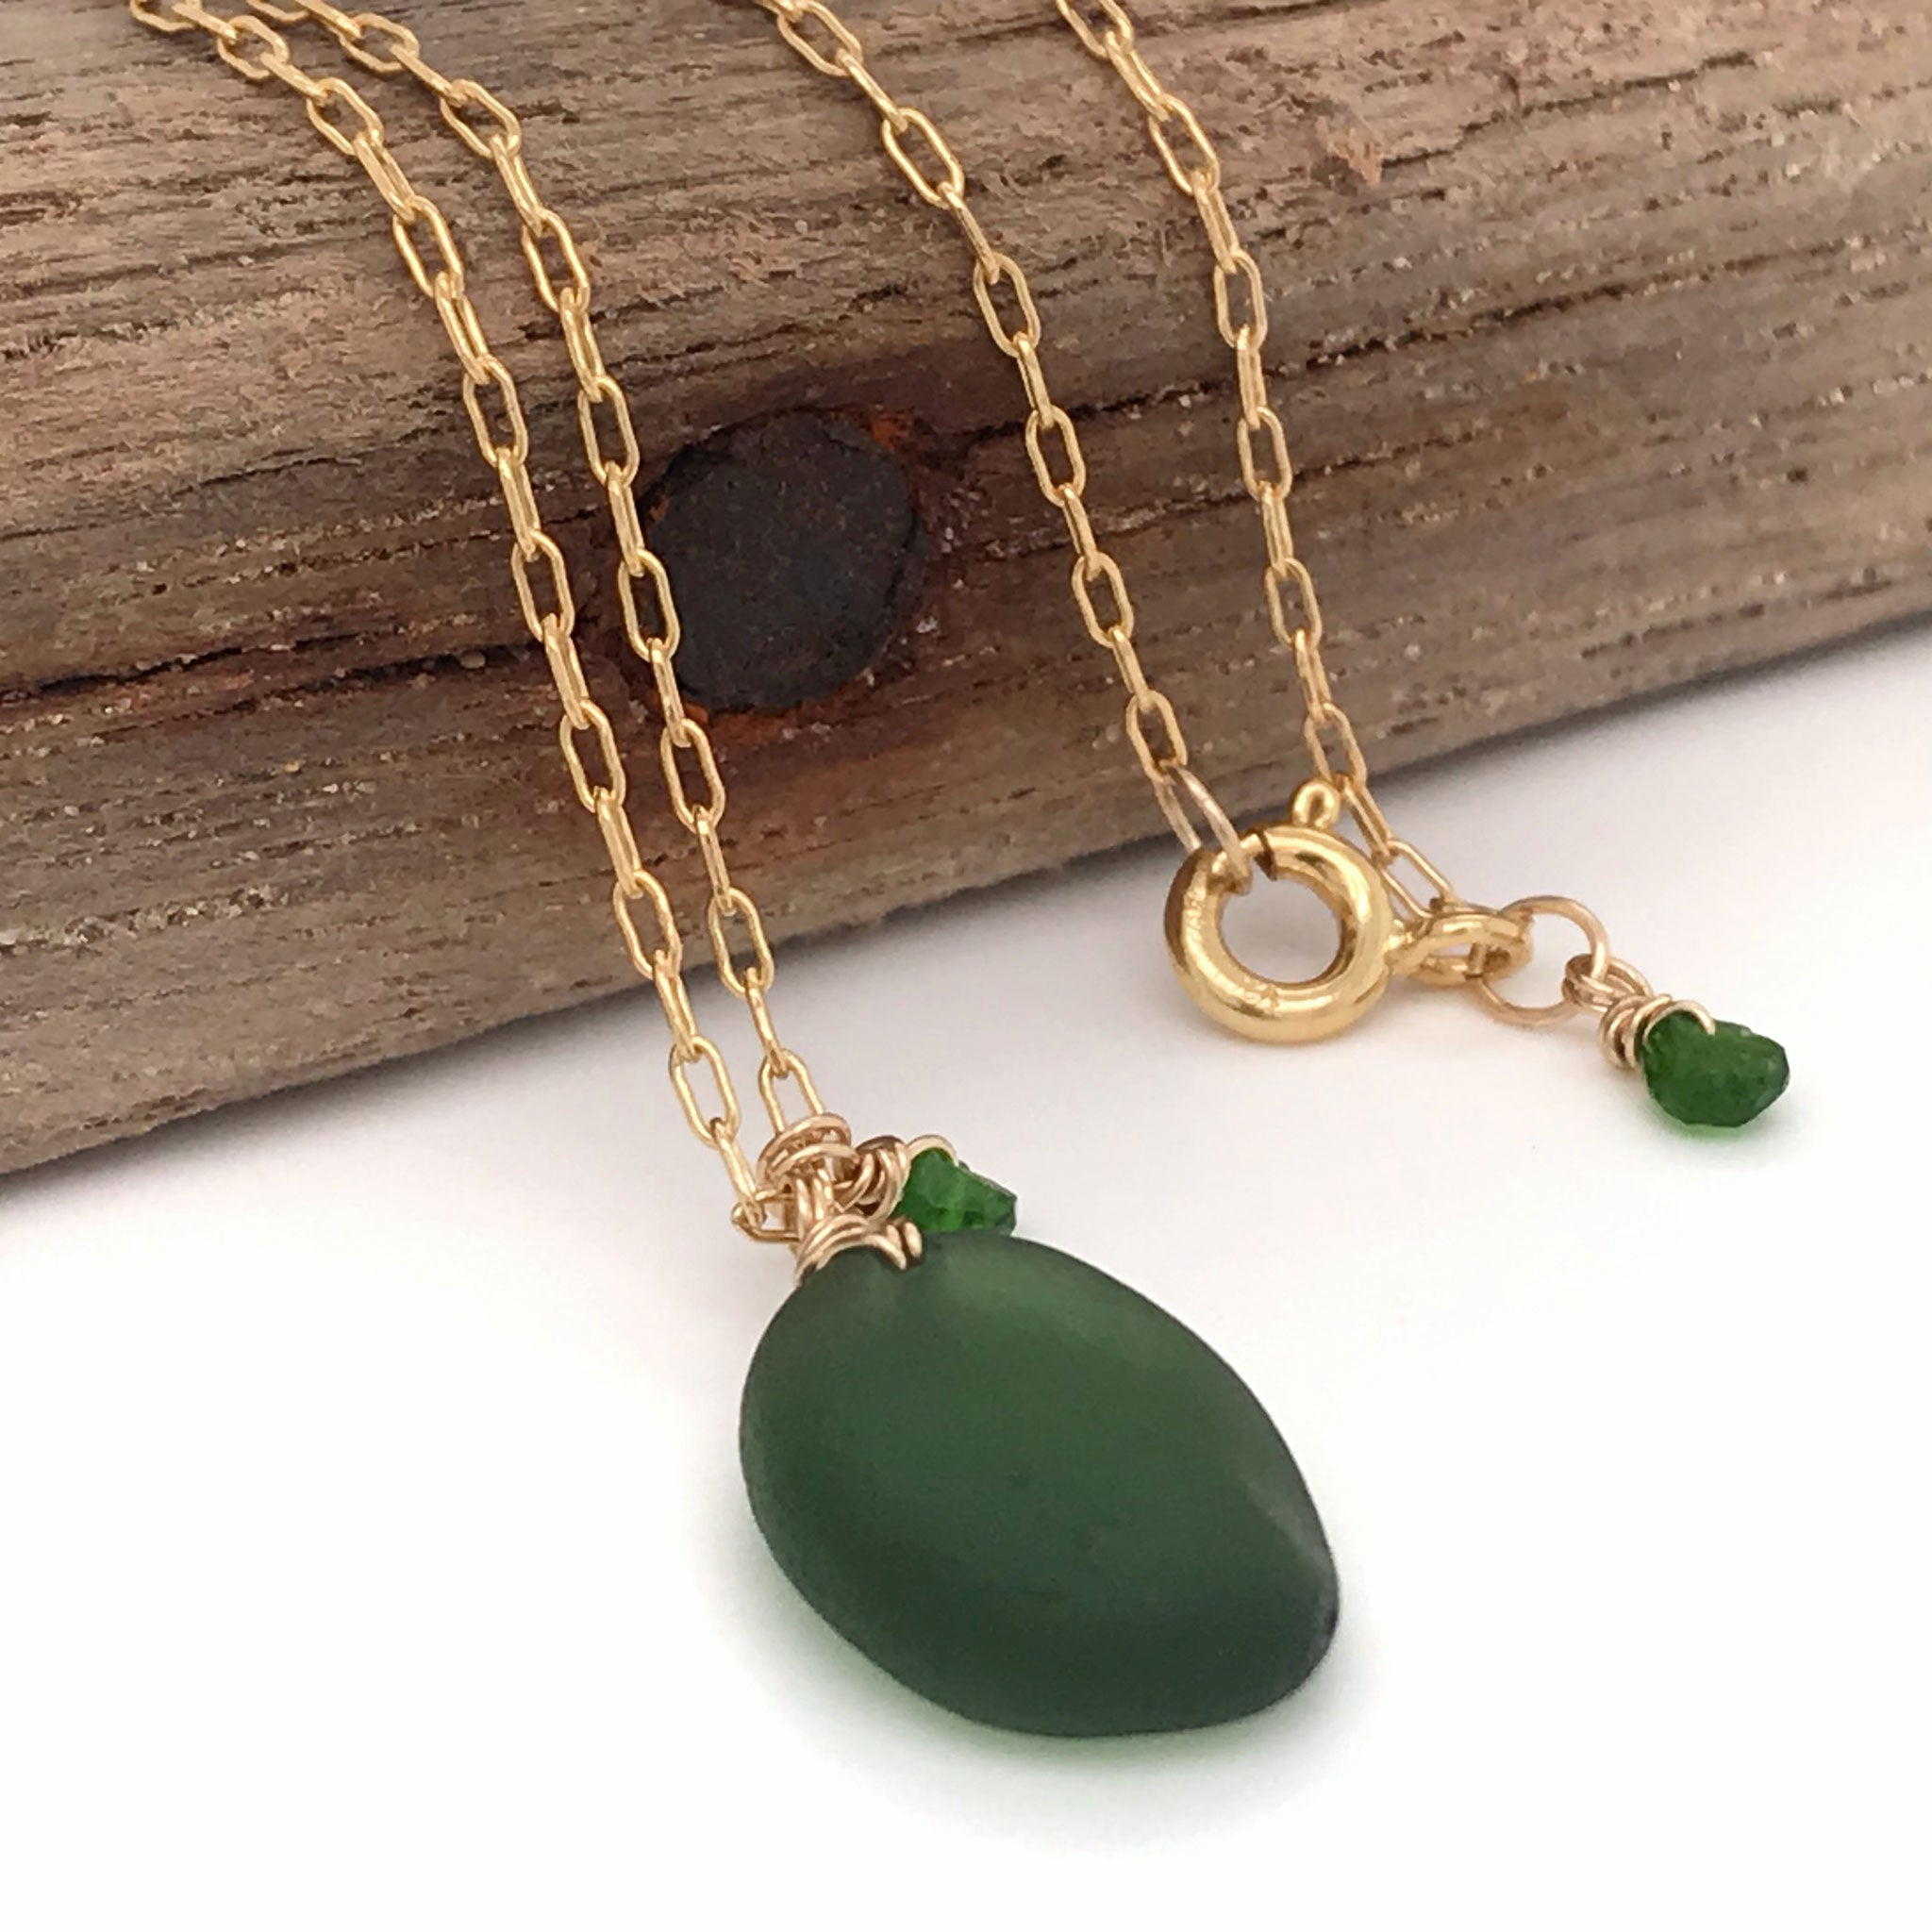 green seaglass necklace with tsavorite stones on gold chain kriket Broadhurst jewellery